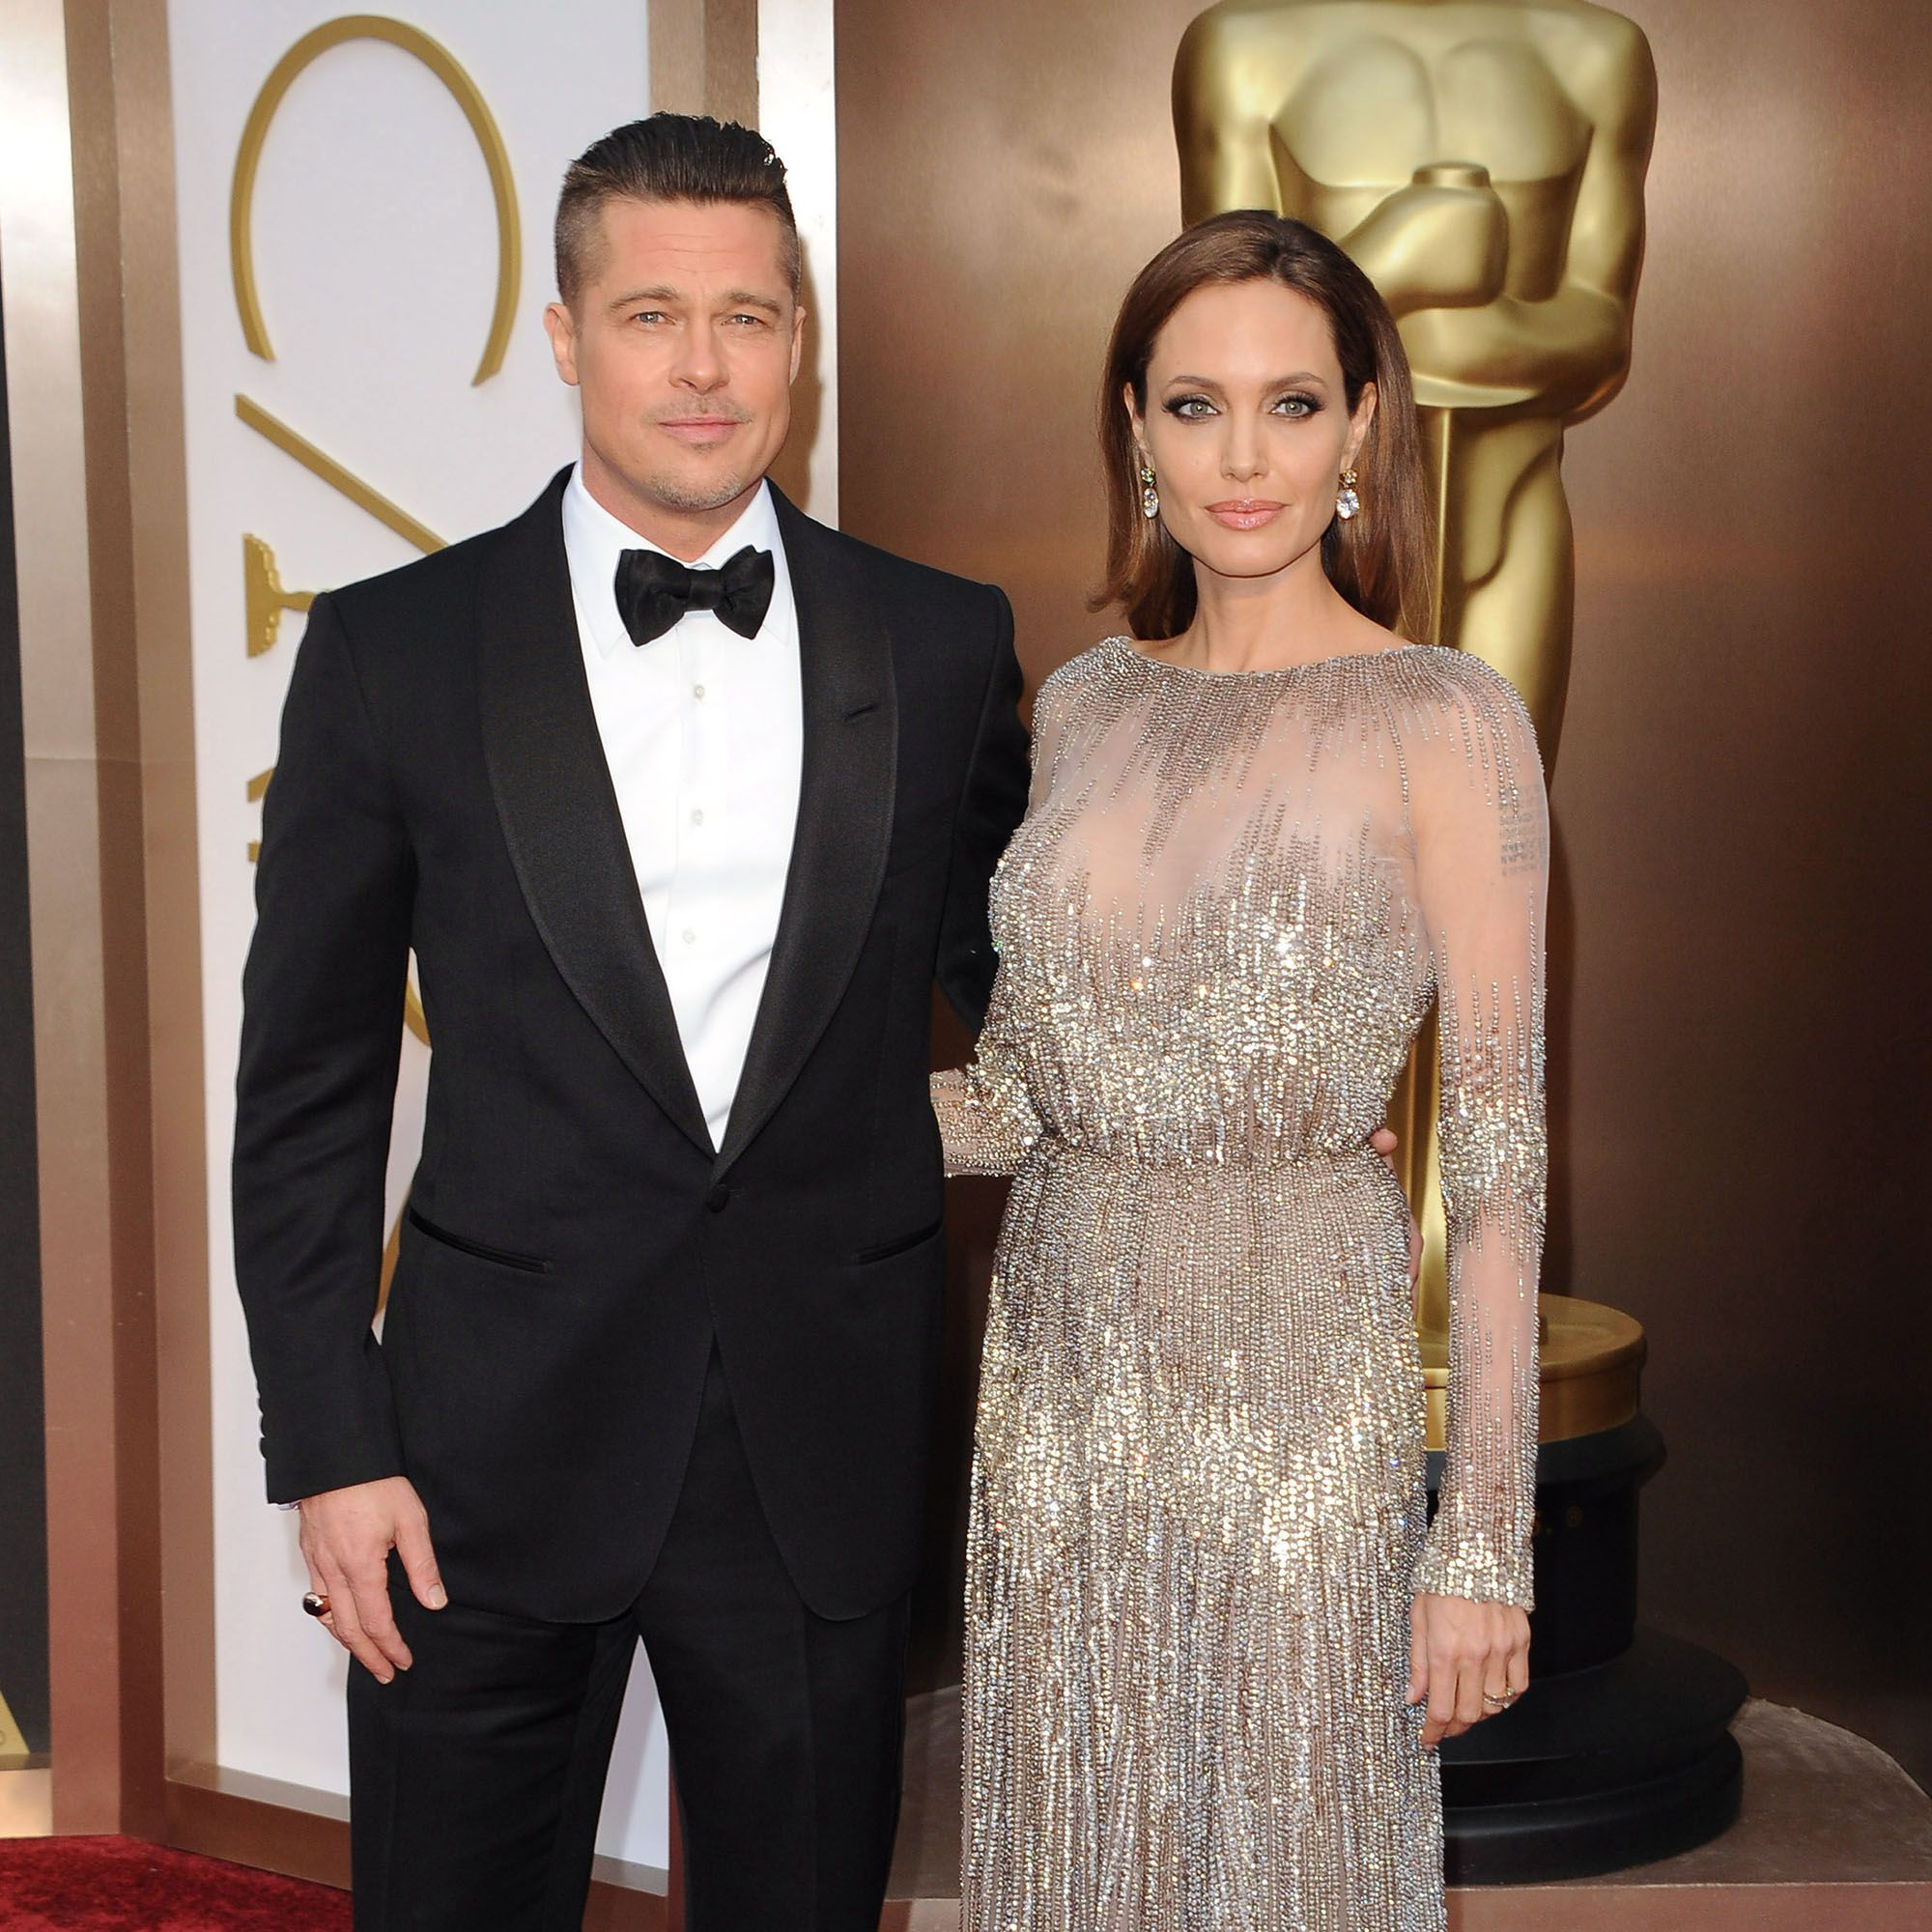 "<p>In the hands-down most shocking celebrity breakup of the year, Jolie surprised the world when she <a href=""http://www.harpersbazaar.com/celebrity/latest/news/a17767/angelina-jolie-brad-pitt-divorce/"" target=""_blank"" data-tracking-id=""recirc-text-link"">filed for divorce from Pitt</a> back in September. The A-list couple wed back in 2014 after dating since 2004 and share six children together. While the divorce papers cite ""irreconcilable differences,""  sources alleged a fight involving Pitt and one of the children caused Jolie to ultimately file. Since the split, the couple has entered family therapy and Jolie was temporarily awarded custody of the children. </p>"